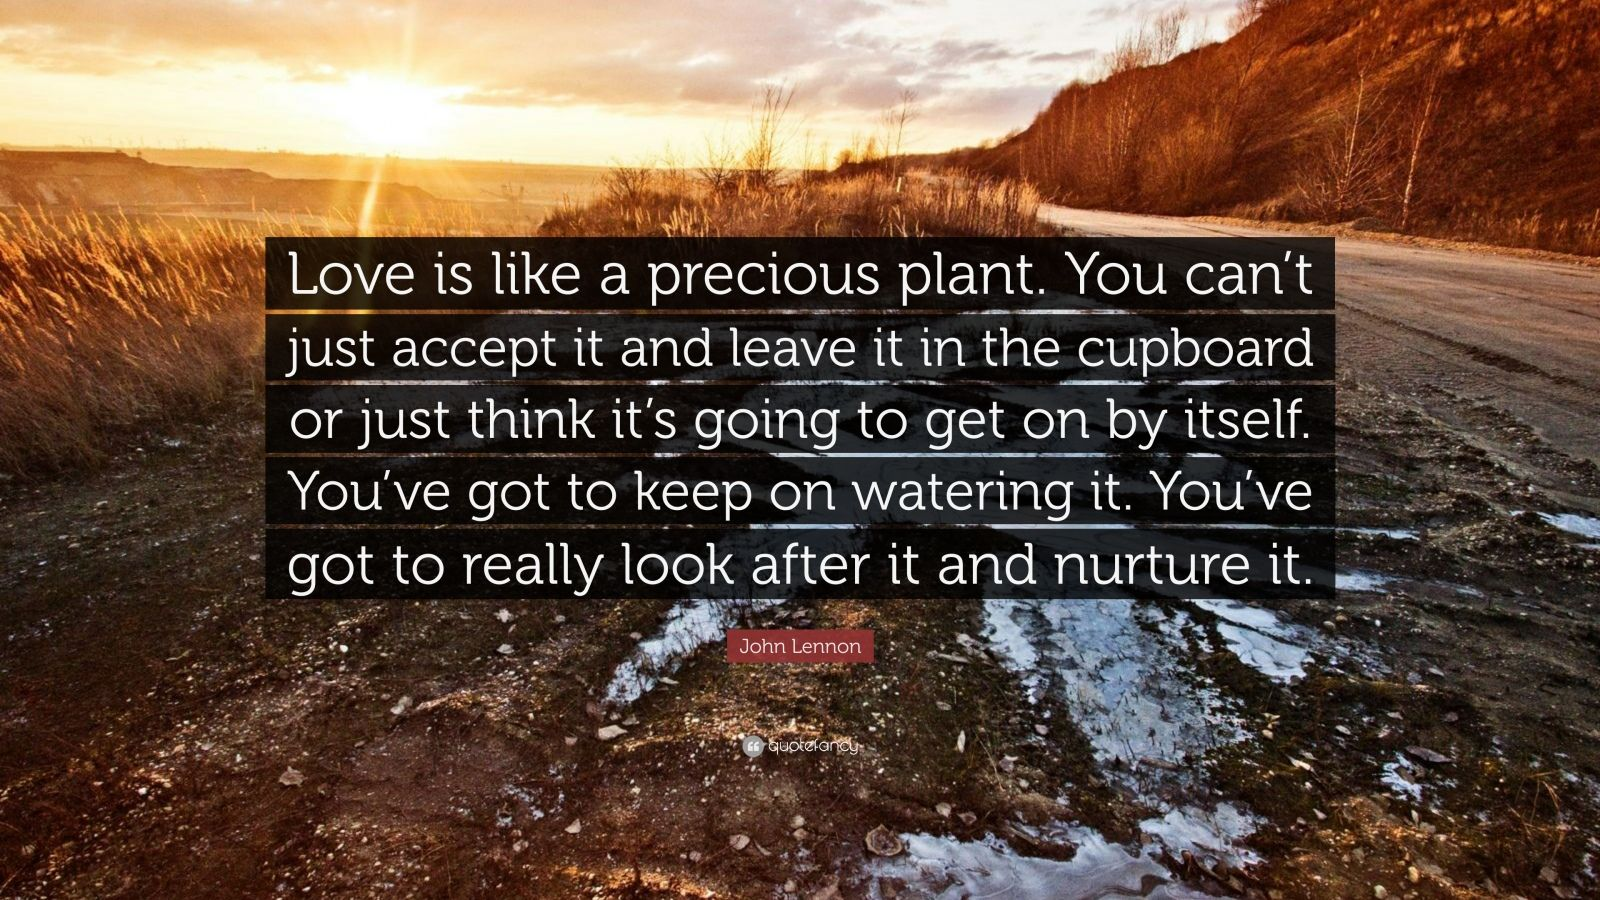 """John Lennon Quote: """"Love is like a precious plant. You can't just accept it and leave it in the cupboard or just think it's going to get on by itself. You've got to keep on watering it. You've got to really look after it and nurture it."""""""